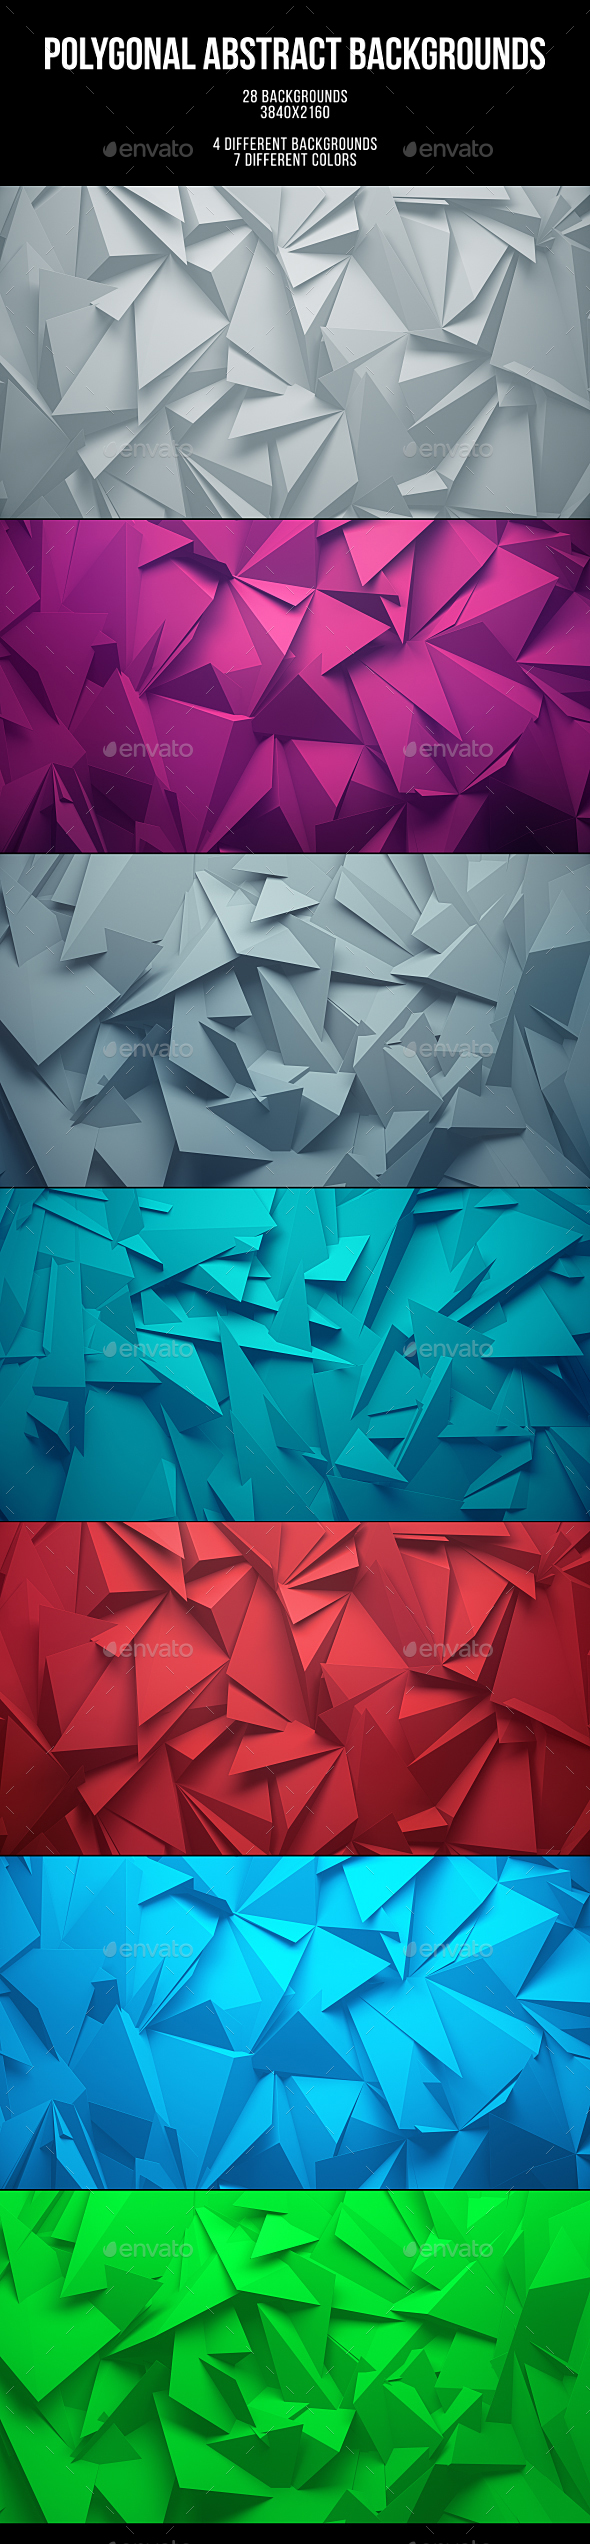 28 Polygonal Abstract Backgrounds